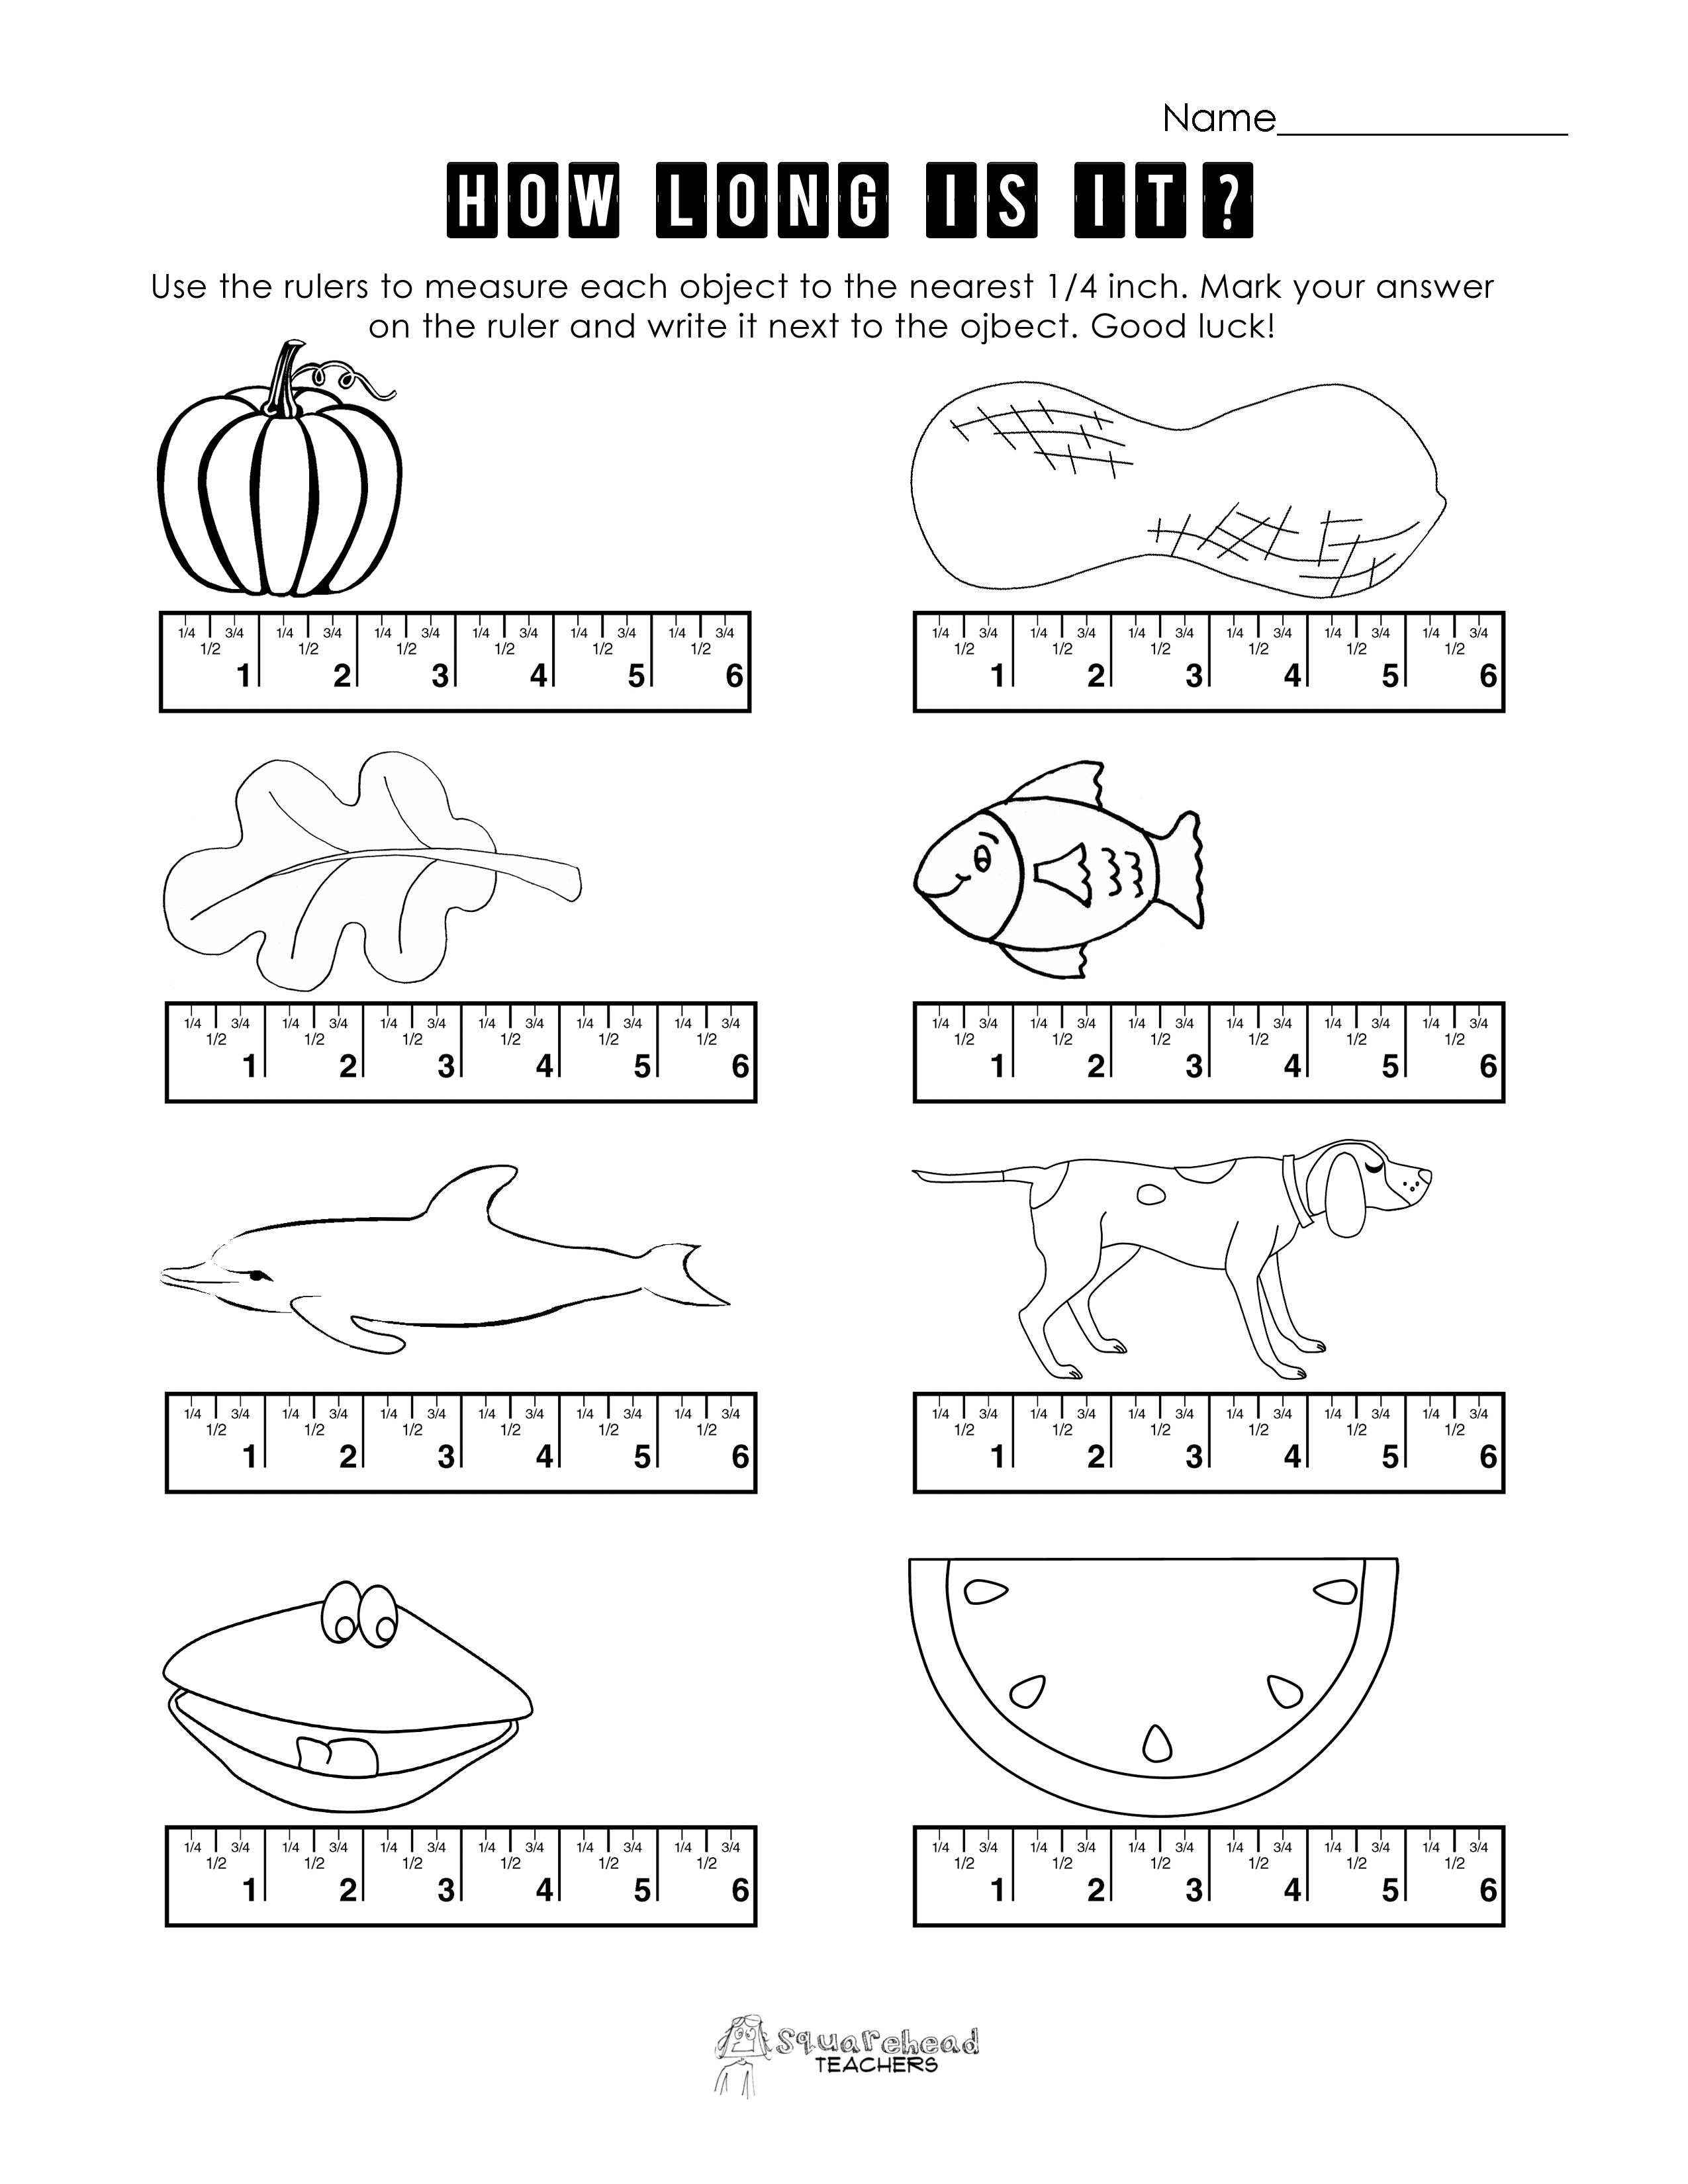 Ruler Measurement Worksheets Worksheets Releaseboard